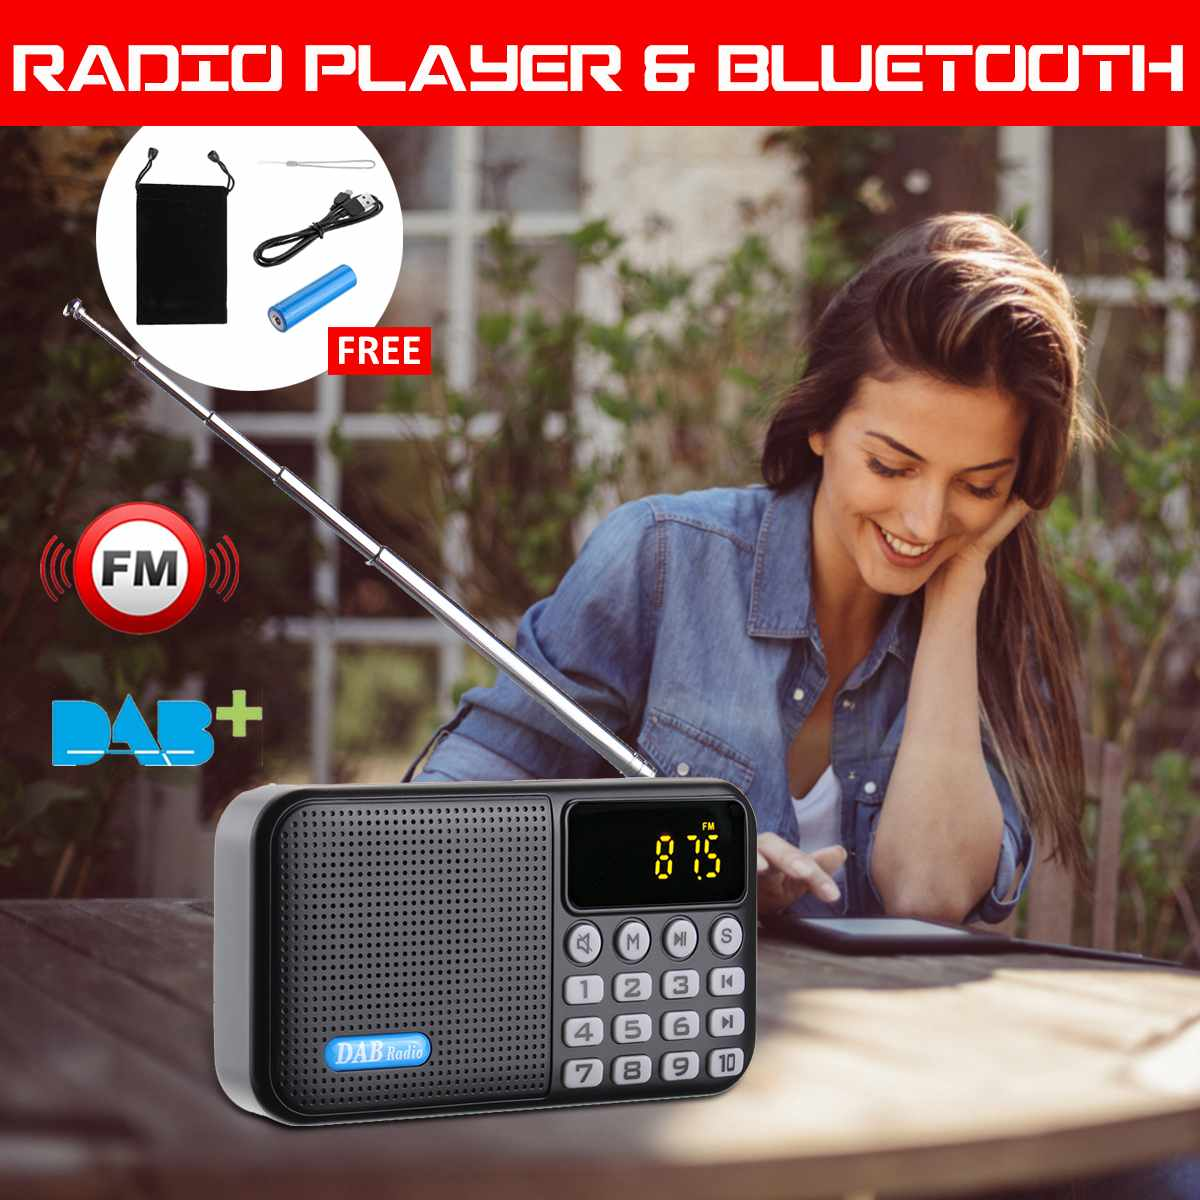 Original Digitale Dab Dab Fm Radio Player Empfänger Mit Bluetooth Stereo Lautsprecher Portable Outdoor Fm Empfänger Ältere Weihnachten Geburt Geschenk Tragbares Audio & Video